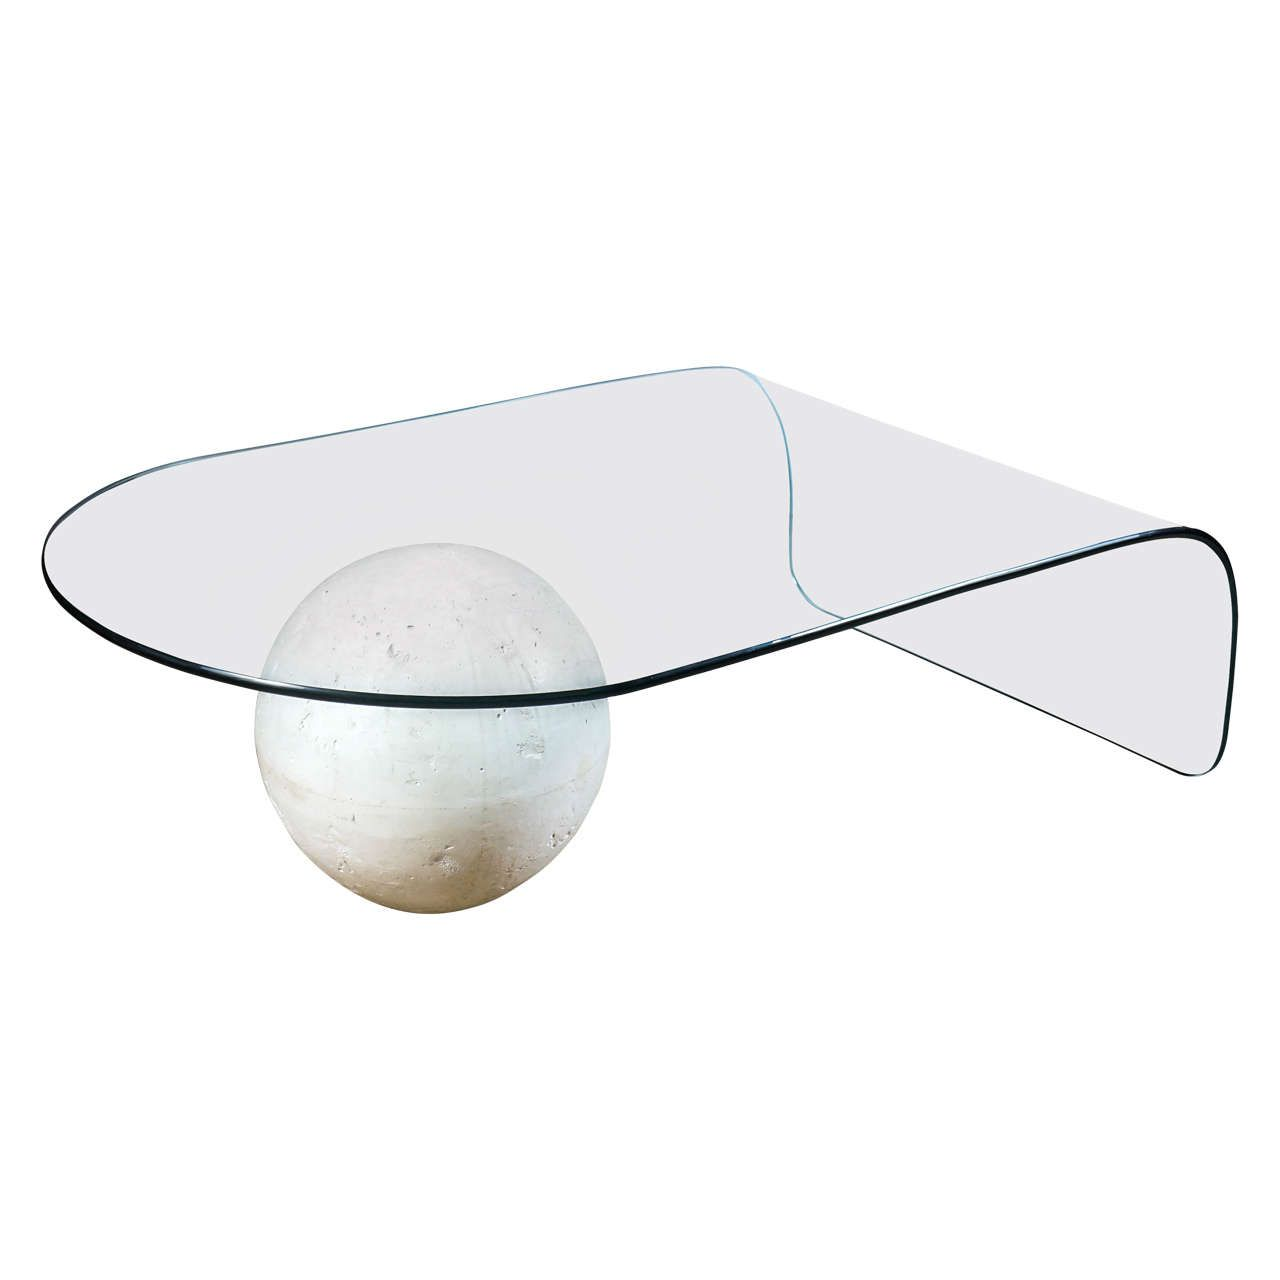 Glass Coffee Table With Plaster Sphere Base 1stdibs Com Glass Coffee Table Coffee Table Cocktail Tables [ 1280 x 1280 Pixel ]